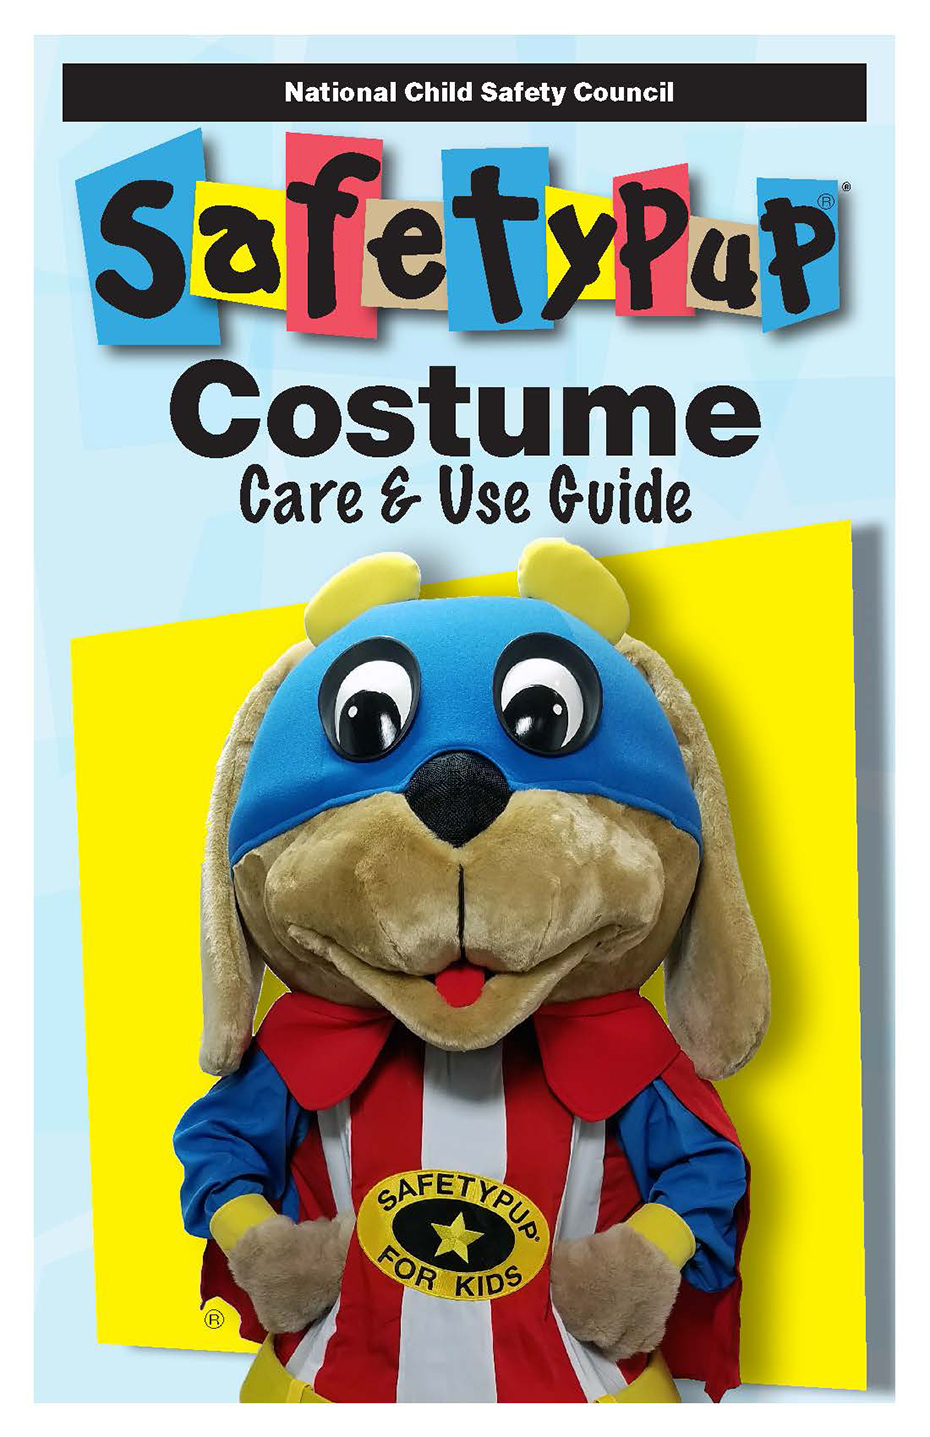 Safetypup<sup>®</sup> Costume